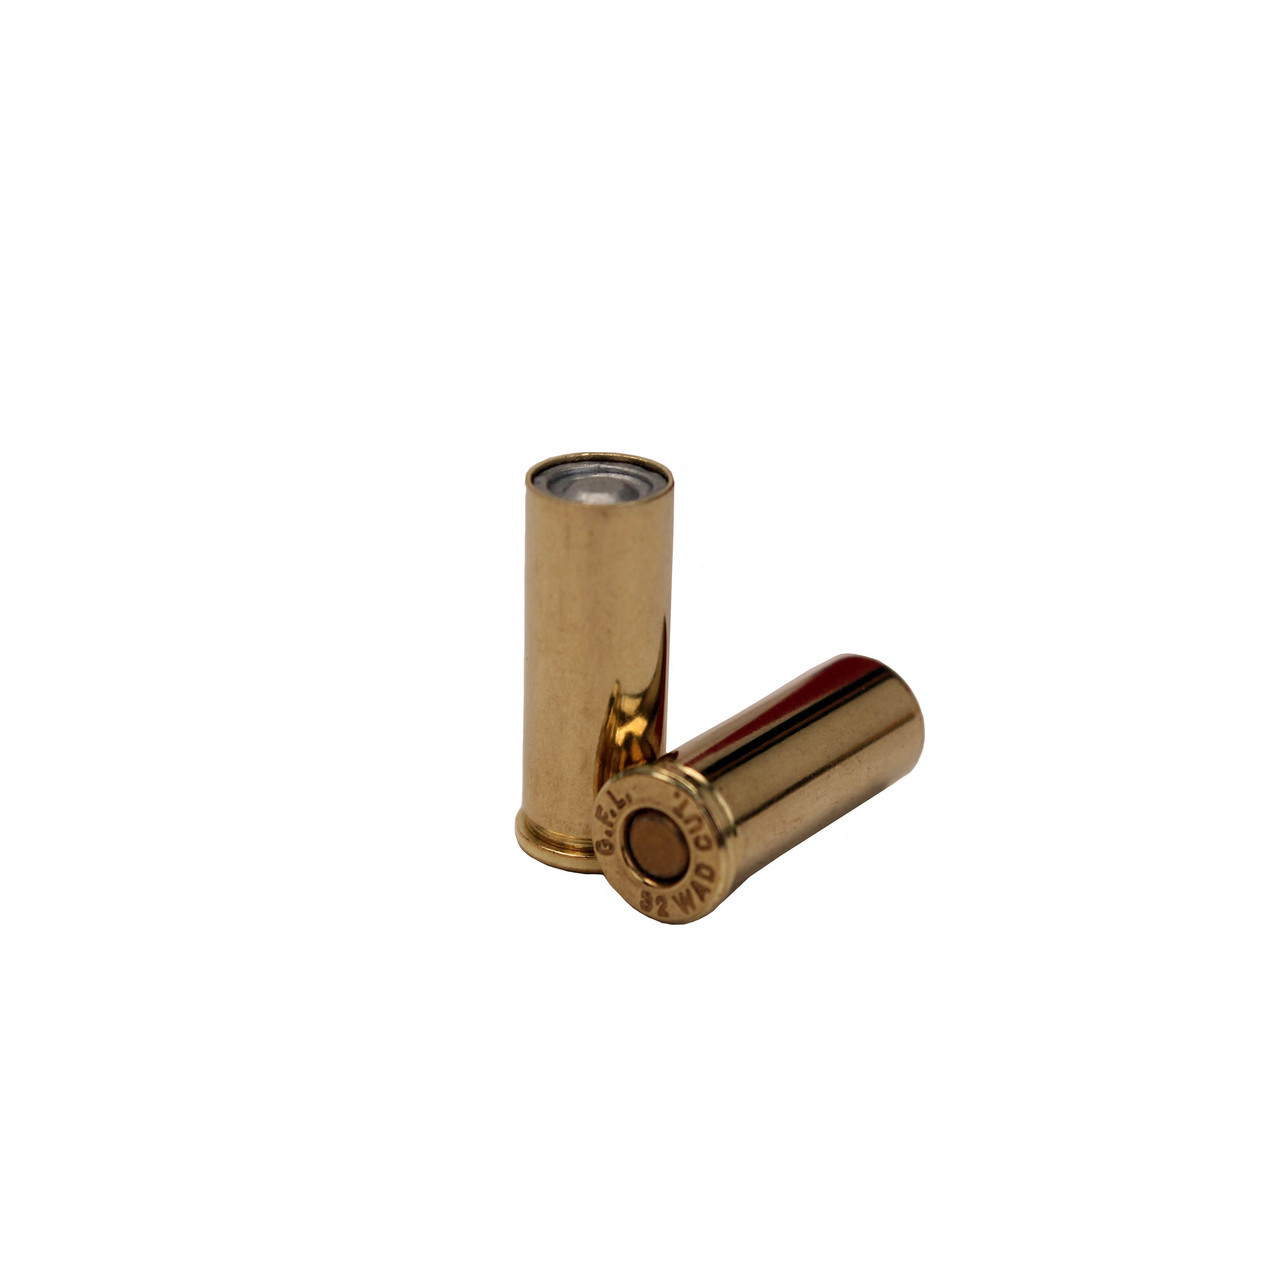 Fiocchi Shooting Dynamics Ammunition 32 S&W Long 100 Grain Lead Wadcutter  Box of 50, UPC :762344002019